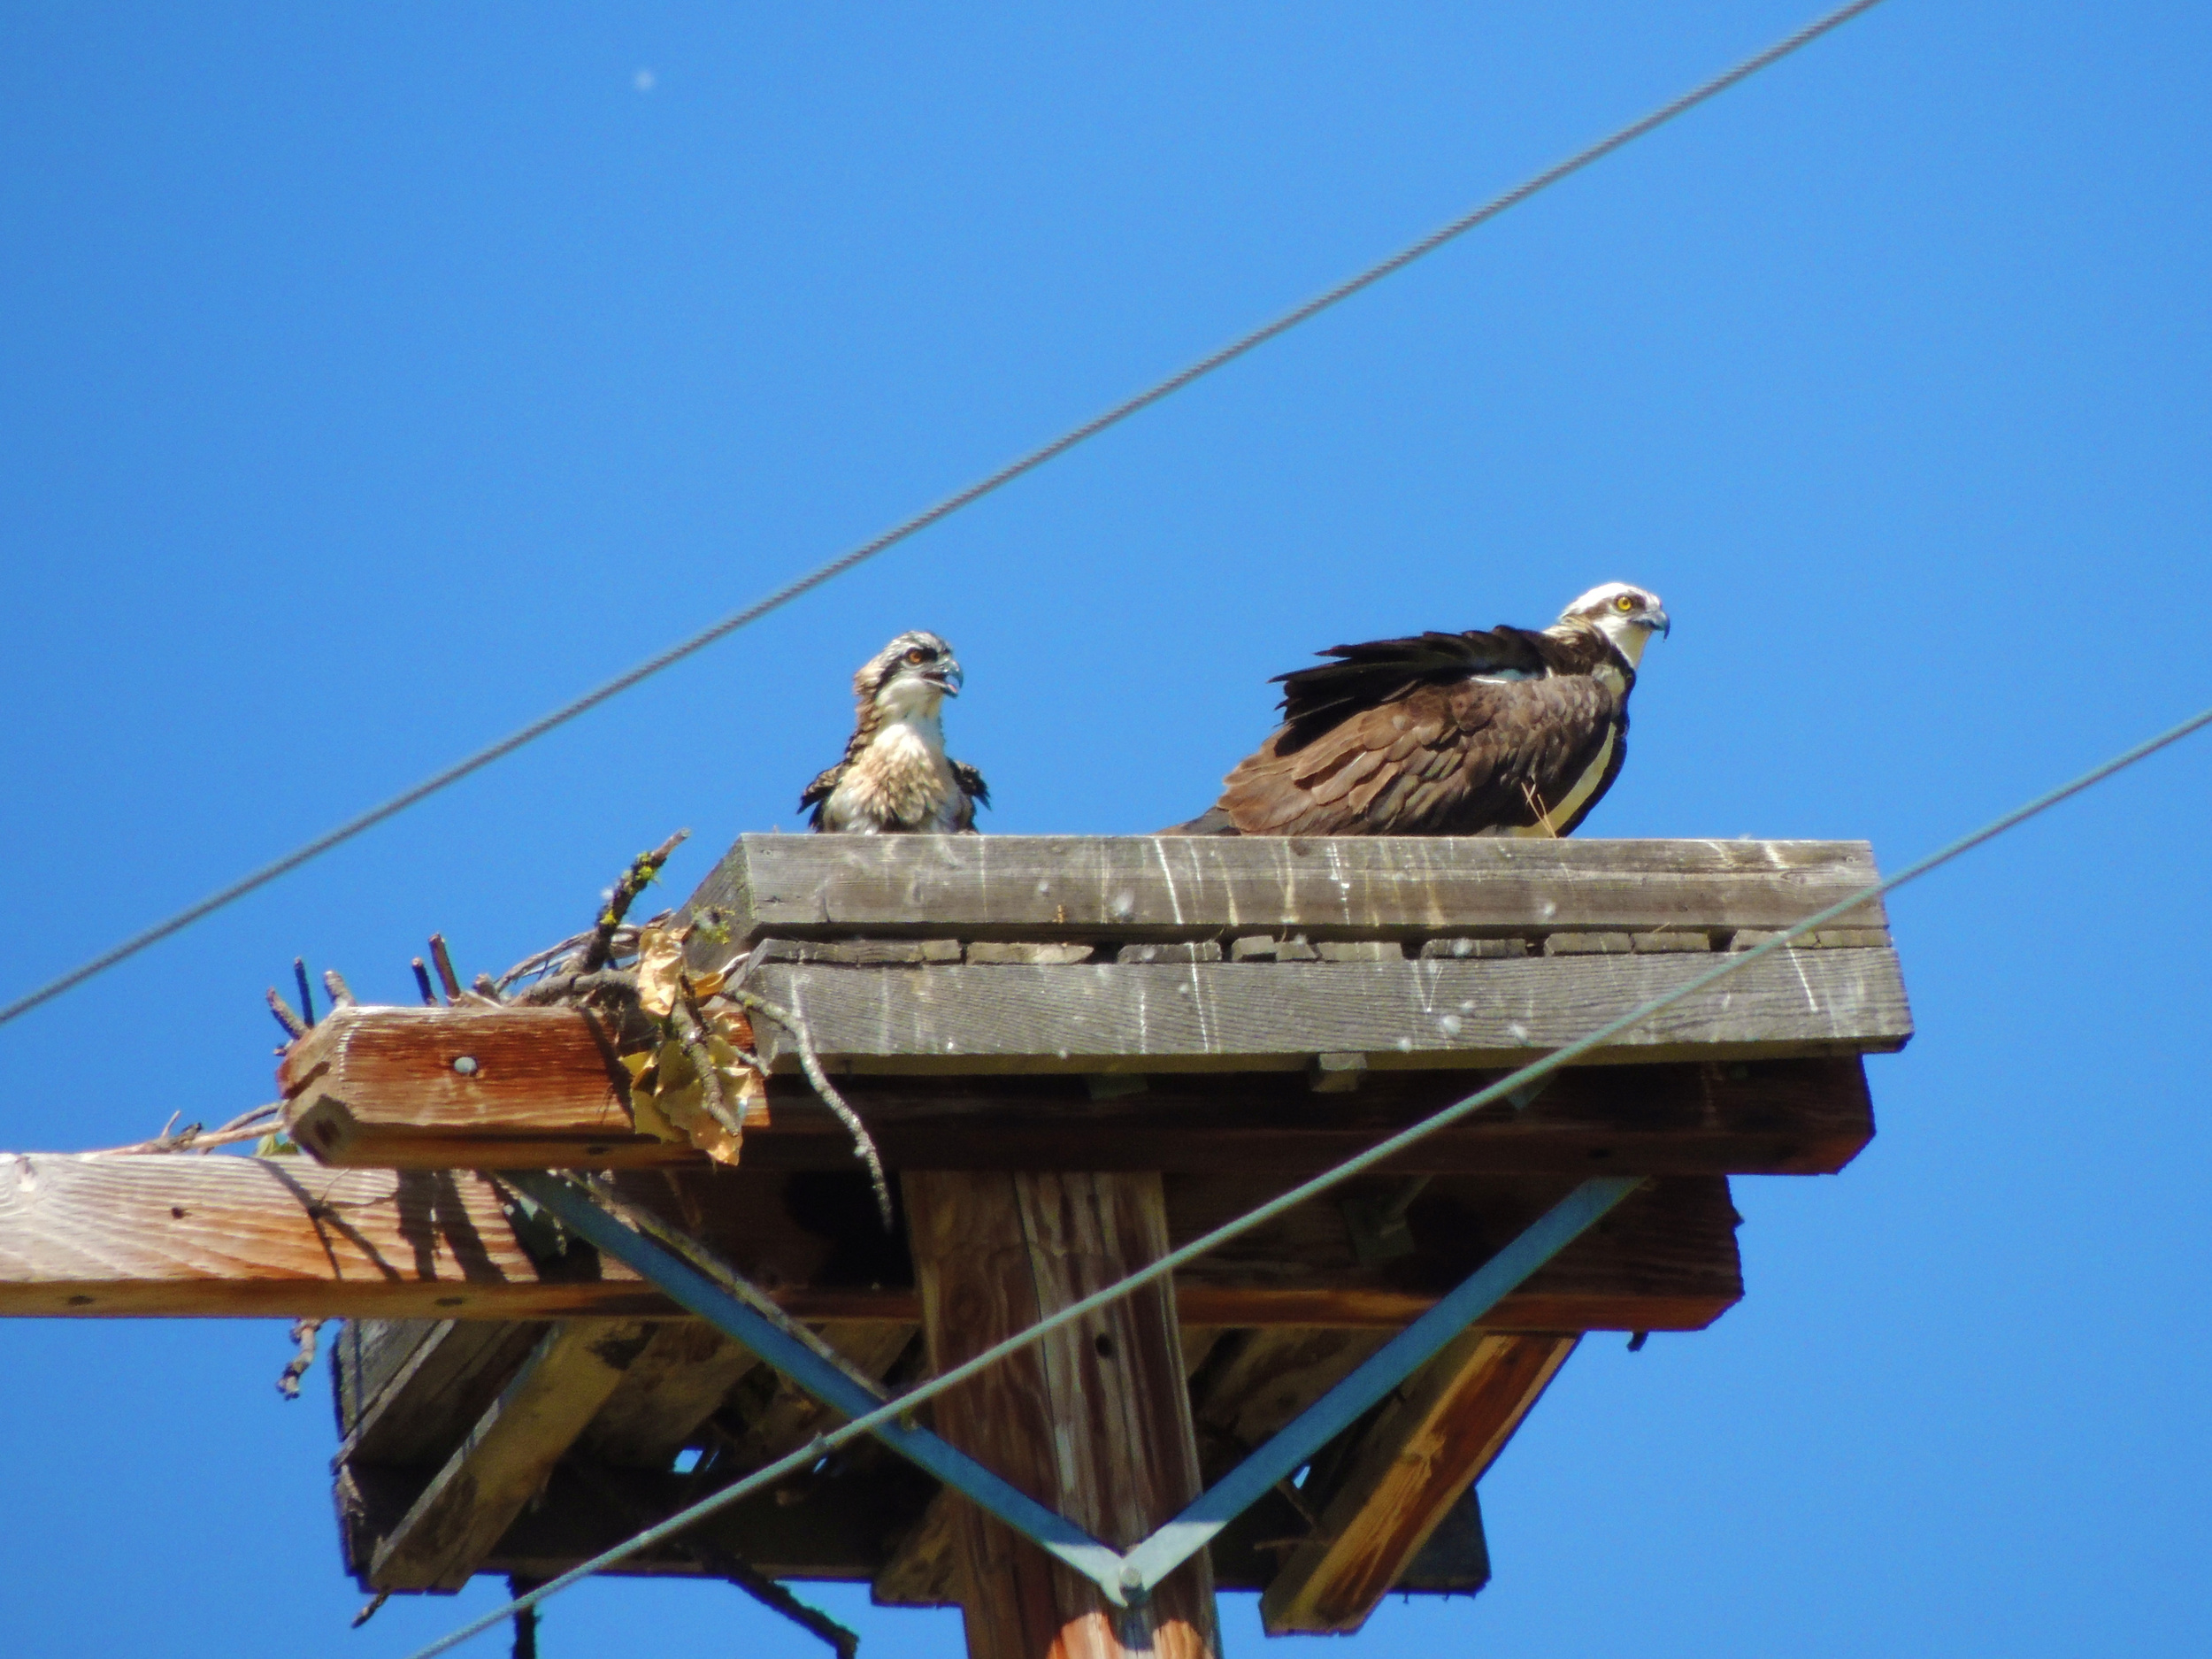 Osprey nesting platform with adult and chick near Sumpter.  Photo by Lynn Murrey